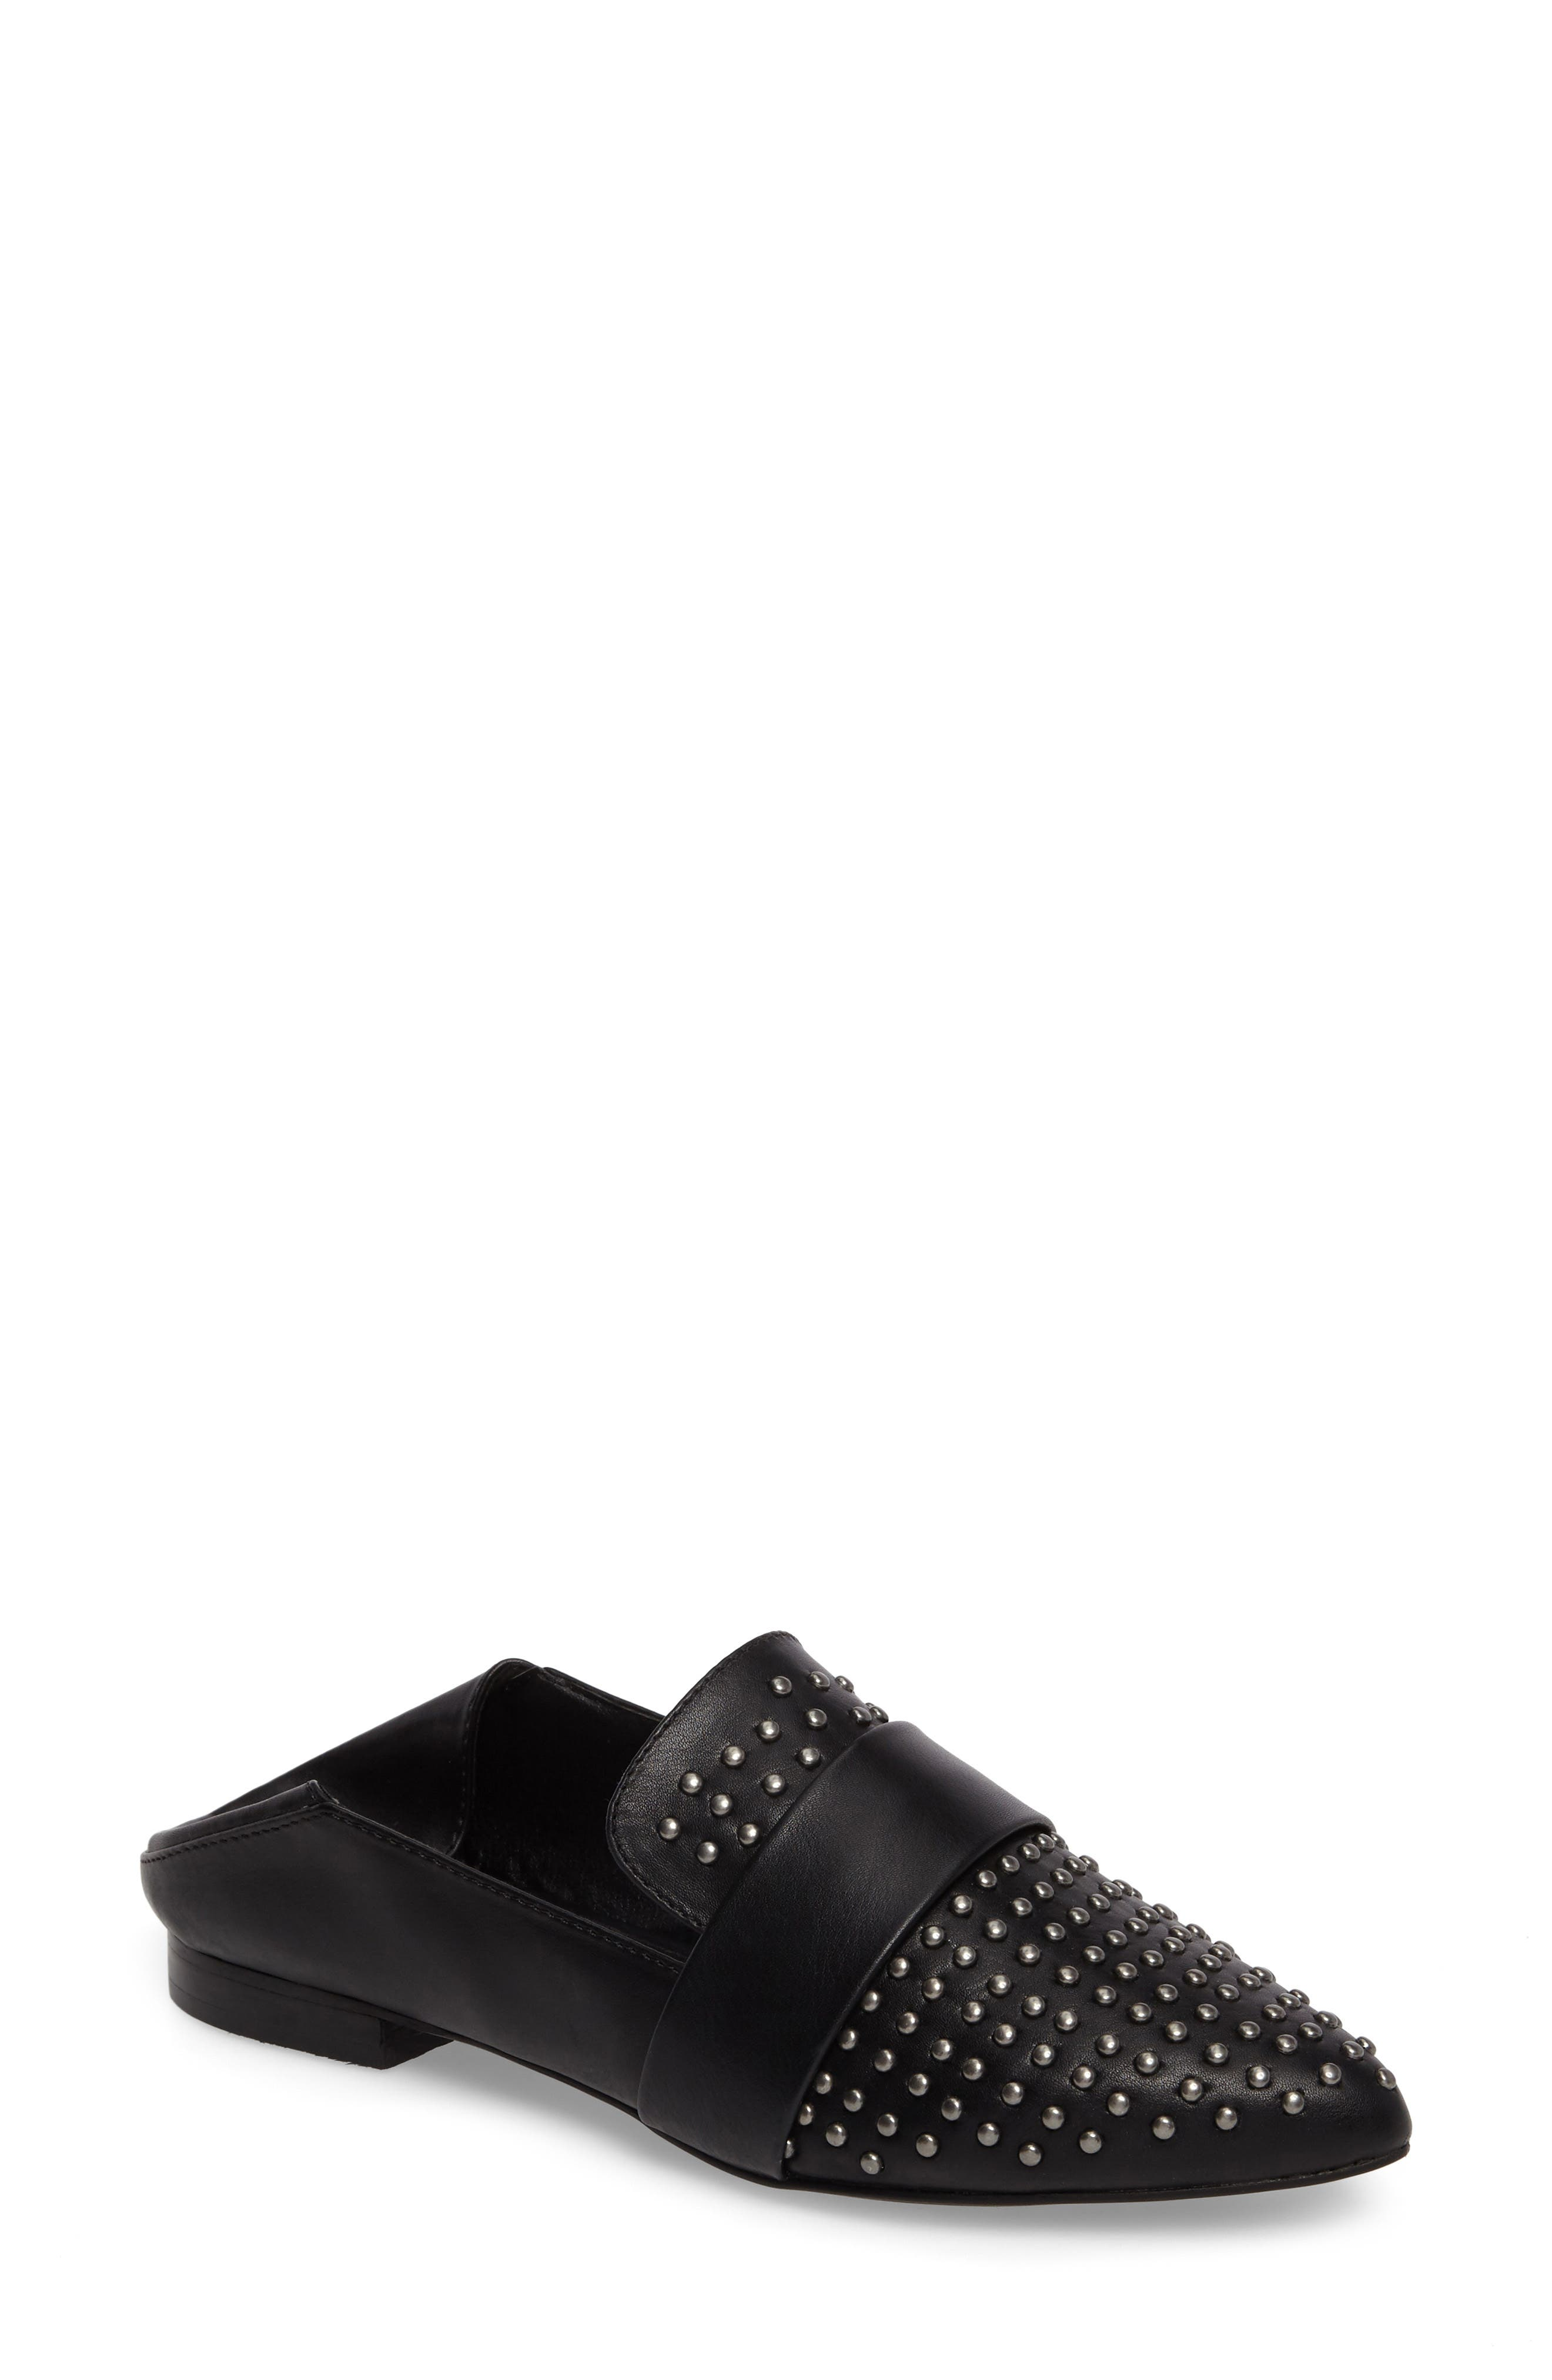 Felix Convertible Loafer,                             Main thumbnail 1, color,                             Black